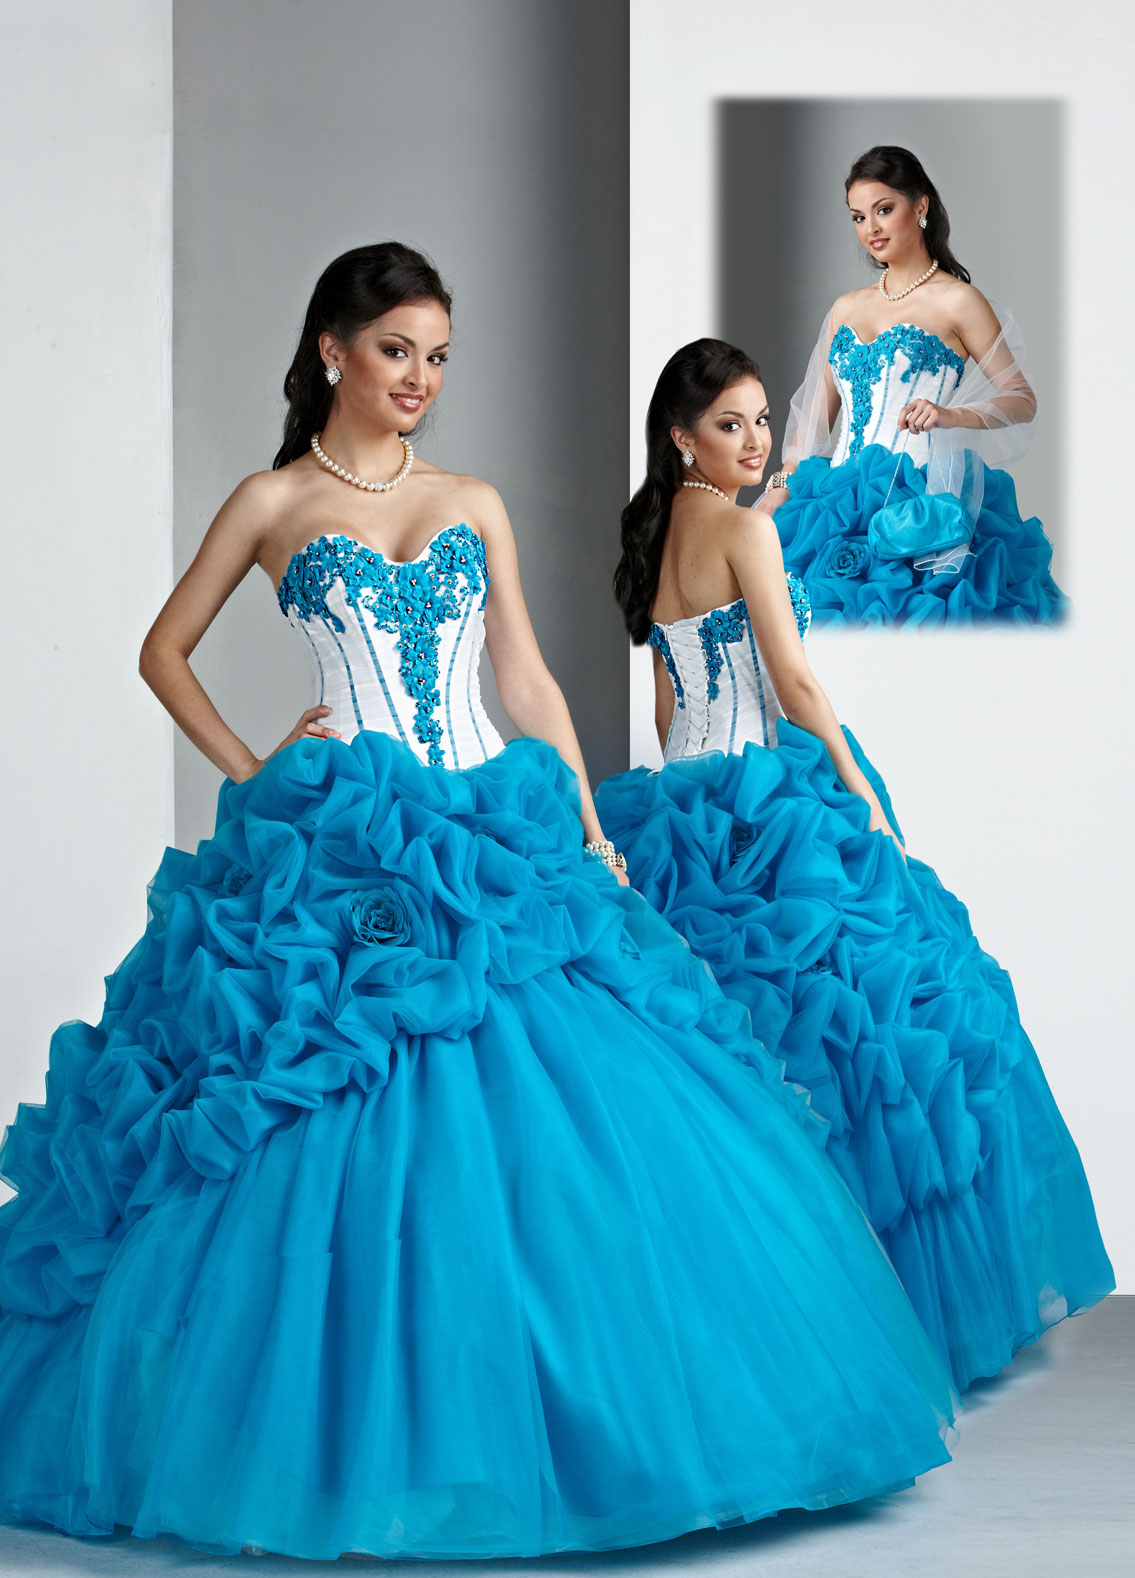 Wedding Dresses Turquoise And White 57